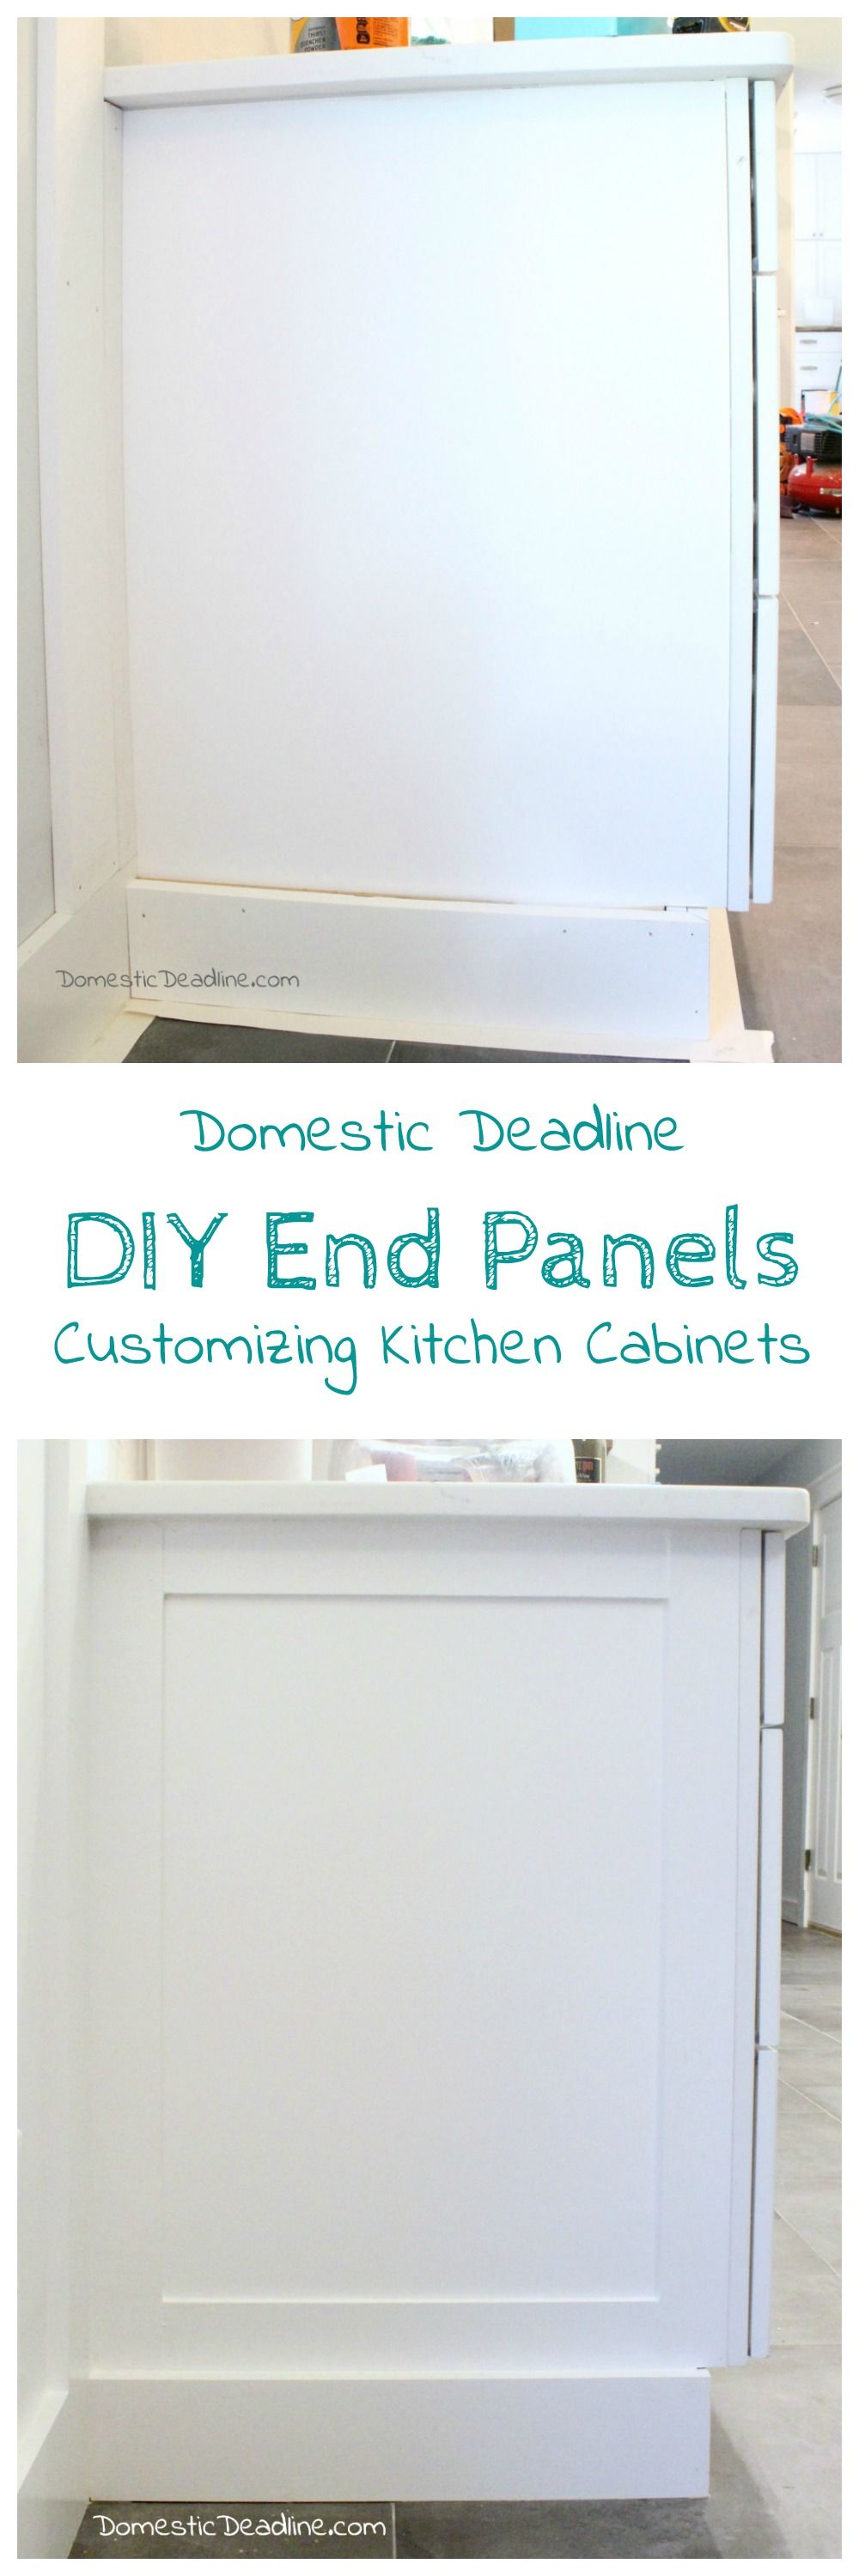 Diy End Panels Cost Effective Solution To Customize Kitchen Cabinets For My Farmhouse Fixer Upper Domestic Deadline